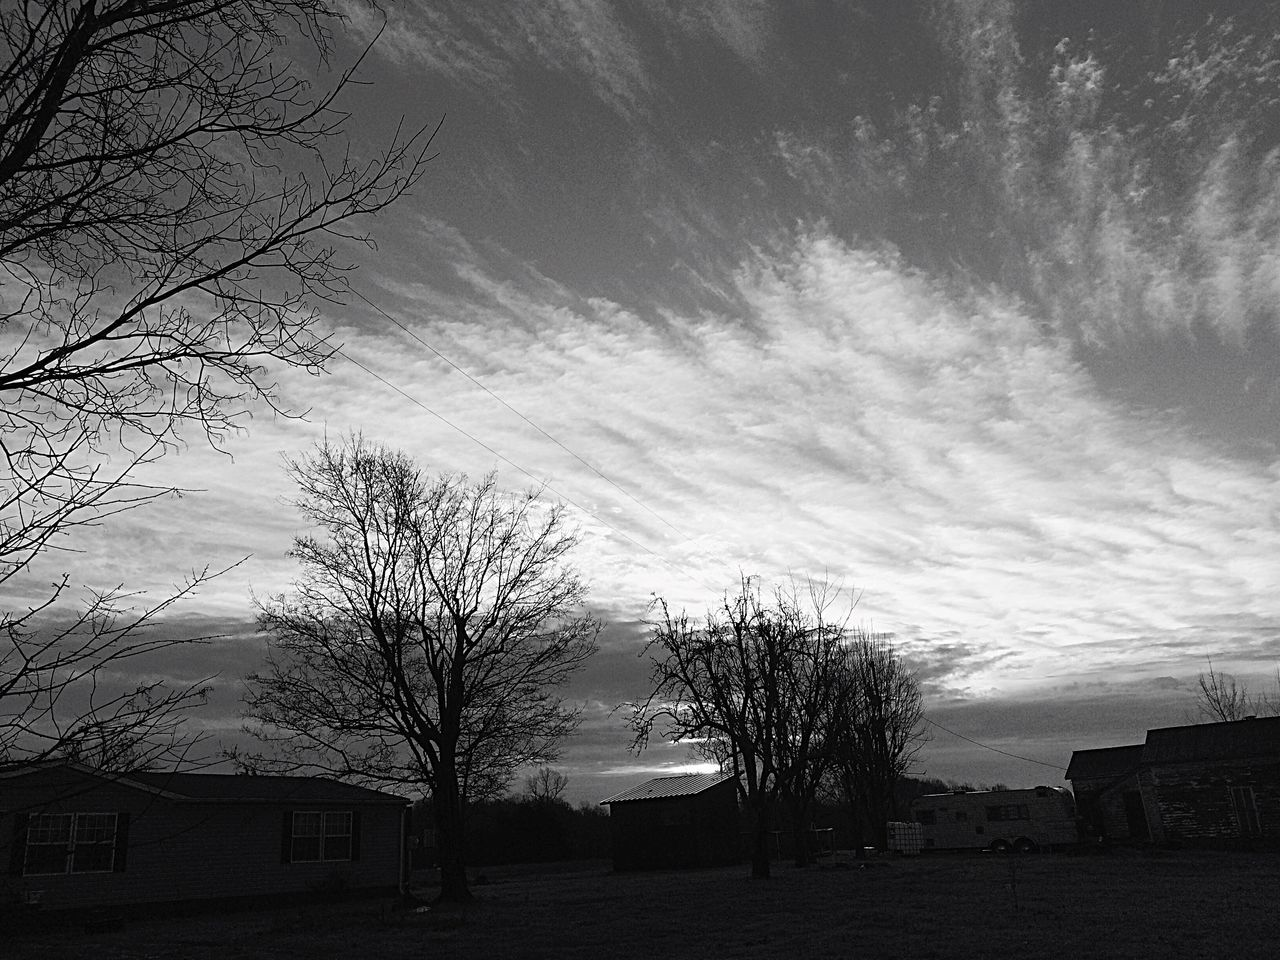 bare tree, sky, architecture, tree, house, building exterior, no people, built structure, branch, outdoors, nature, day